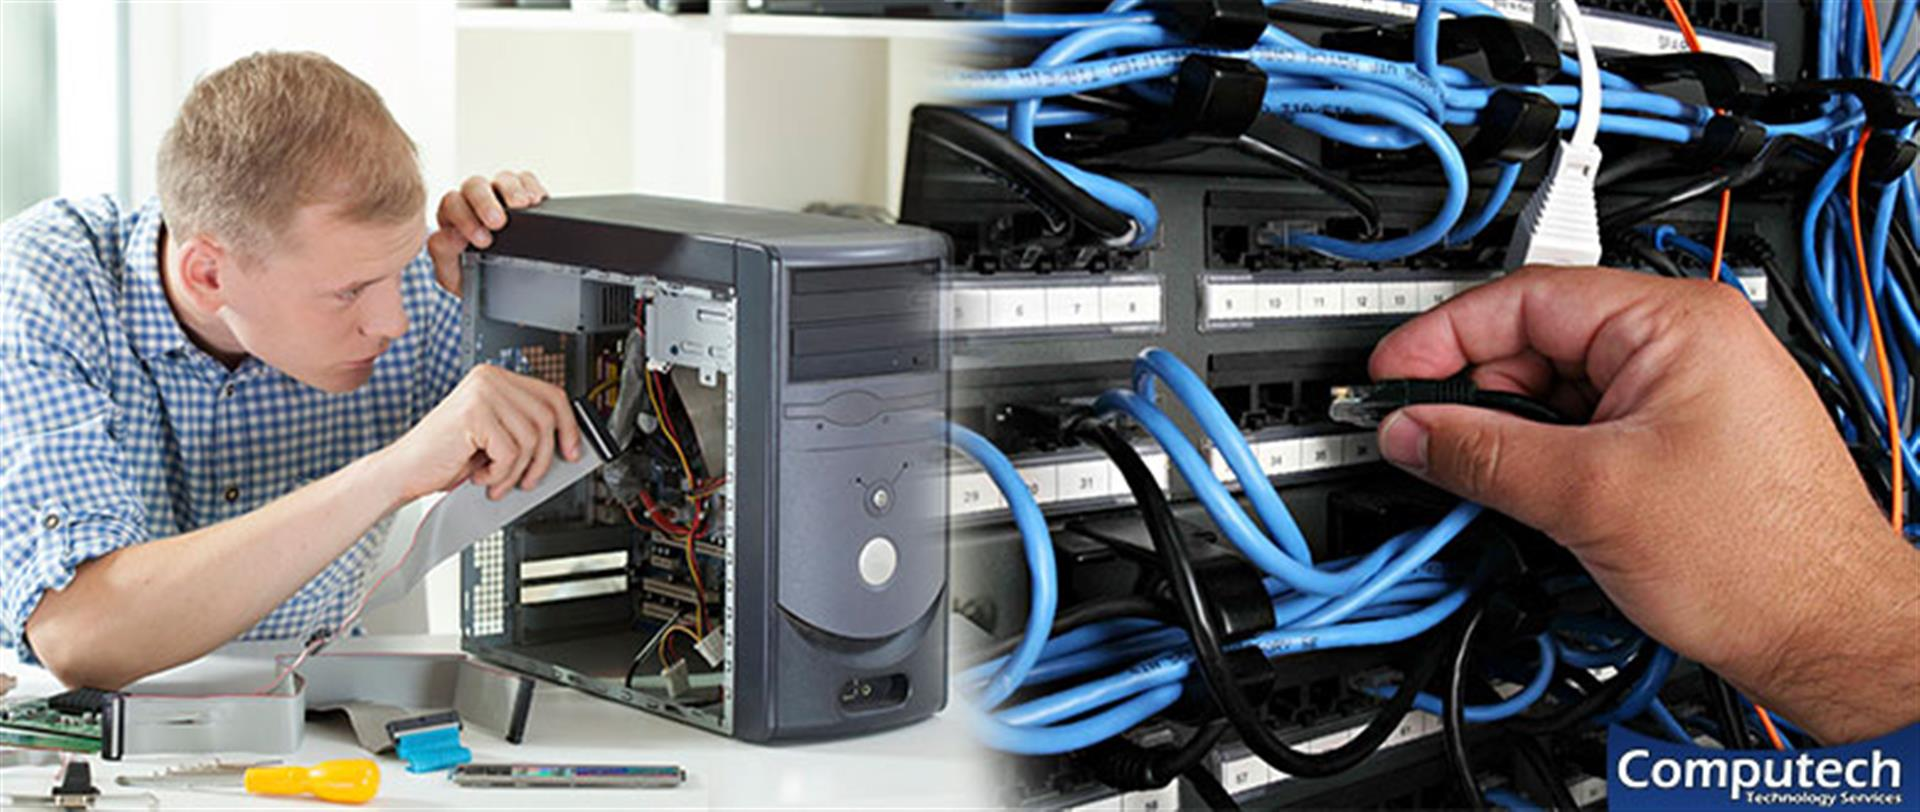 Lake City Tennessee On Site Computer PC & Printer Repair, Network, Voice & Data Cabling Services